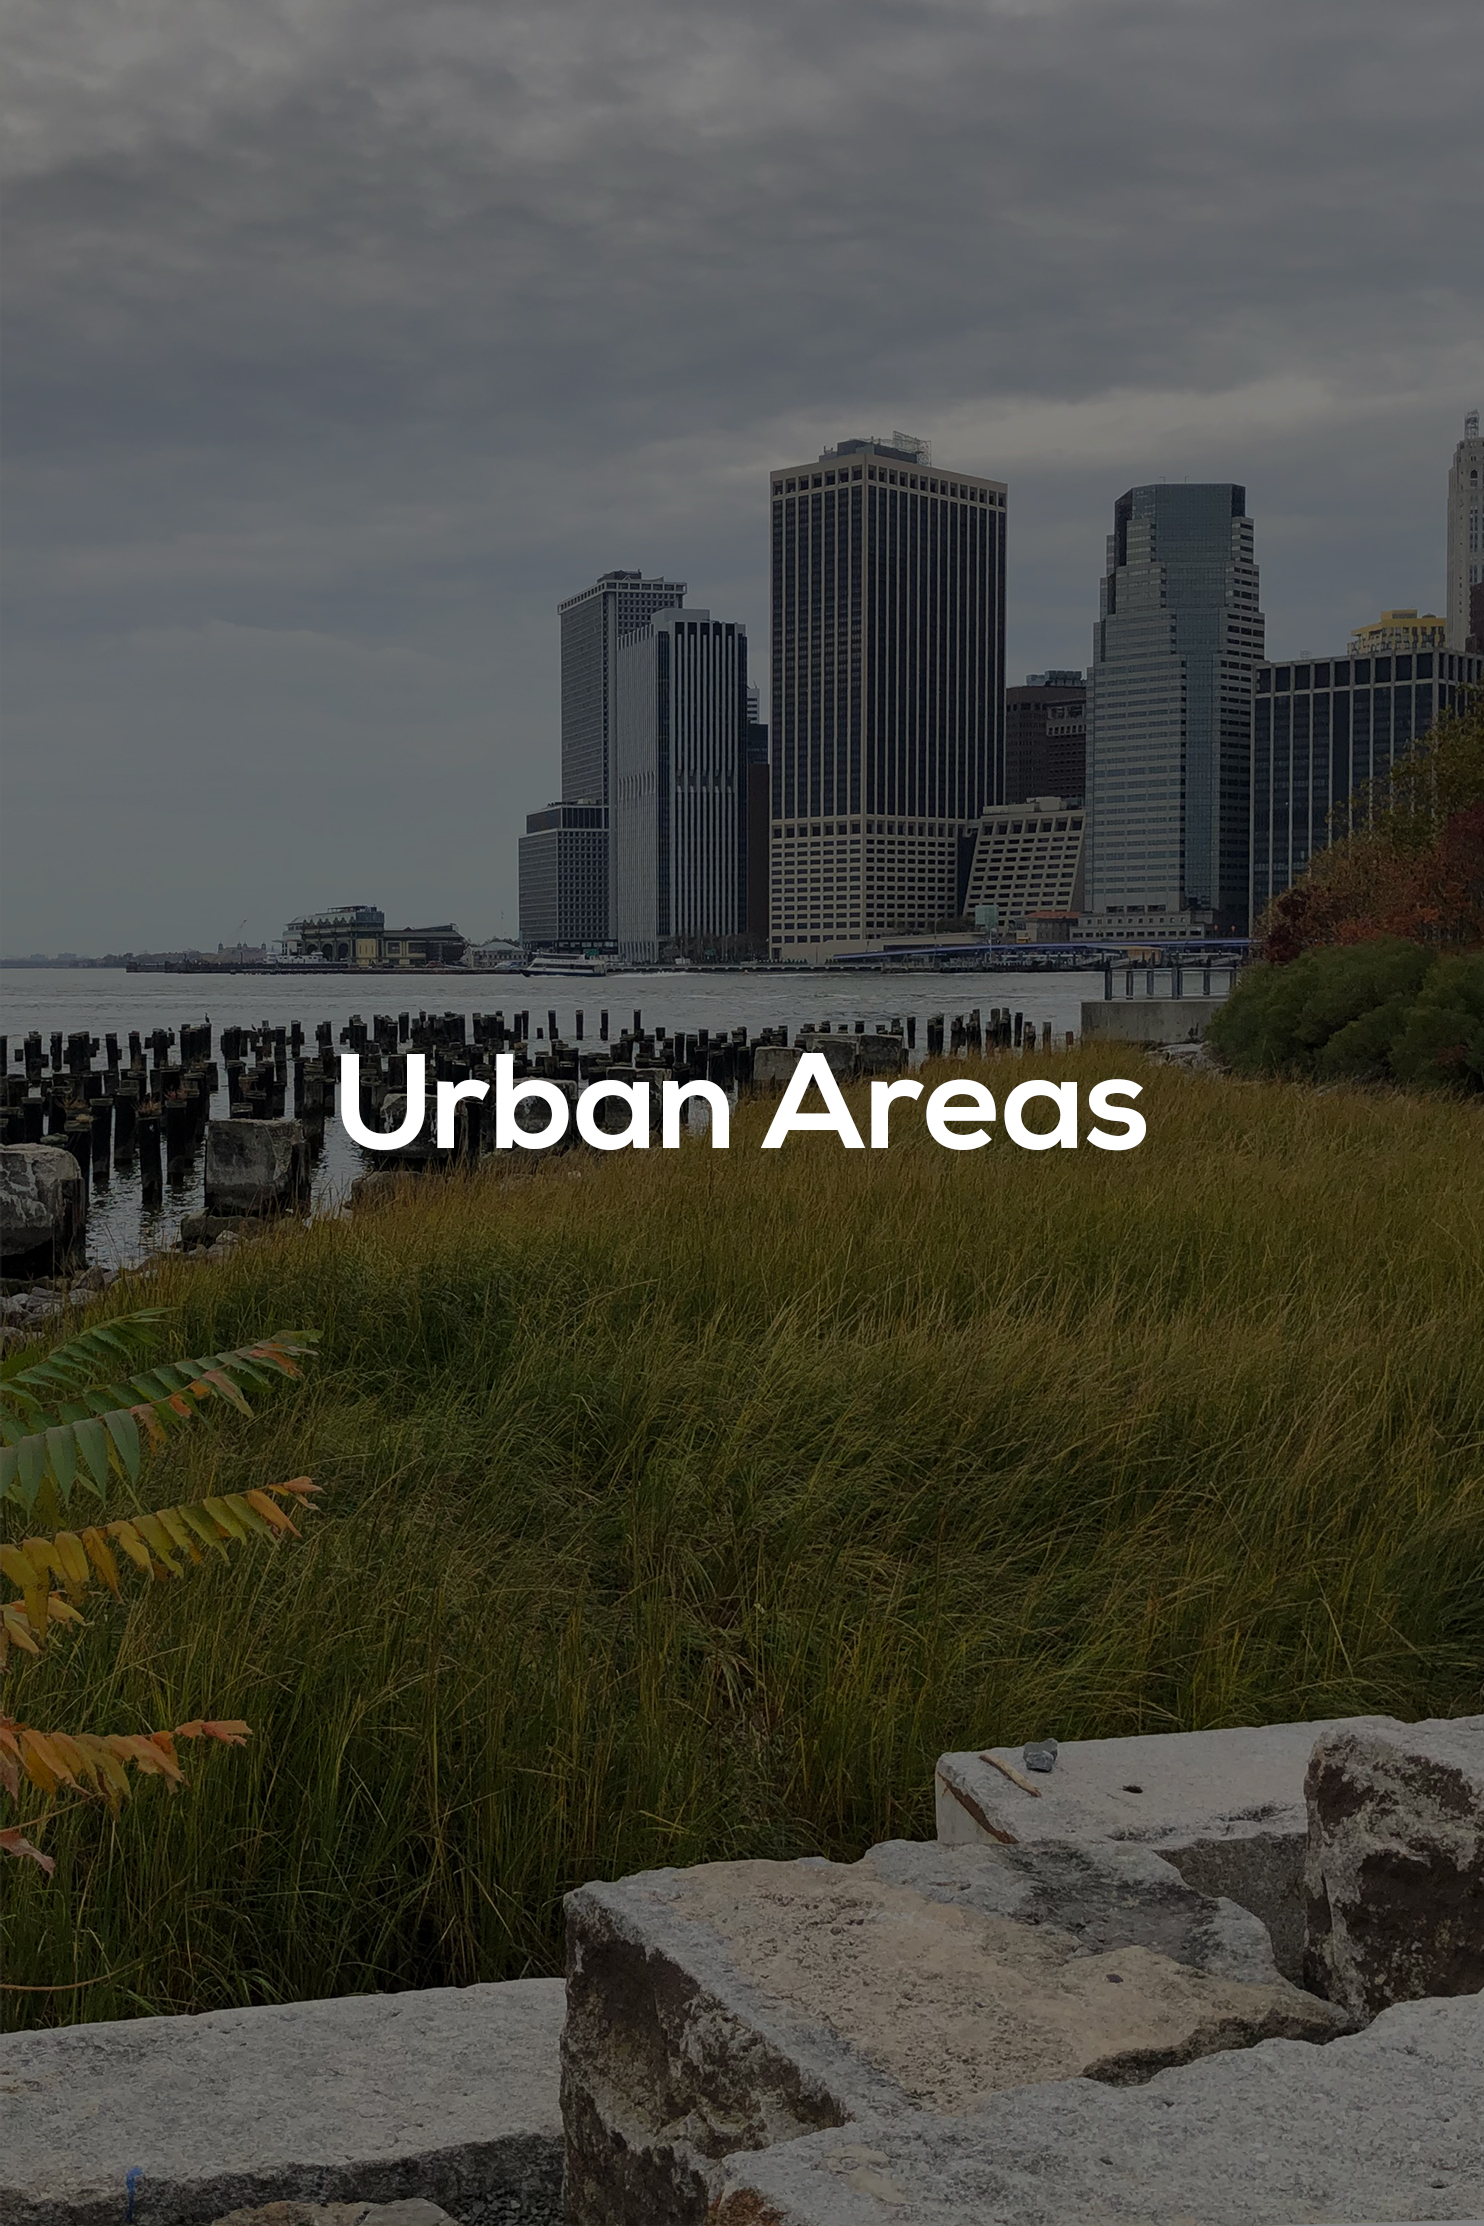 Urban Areas - title